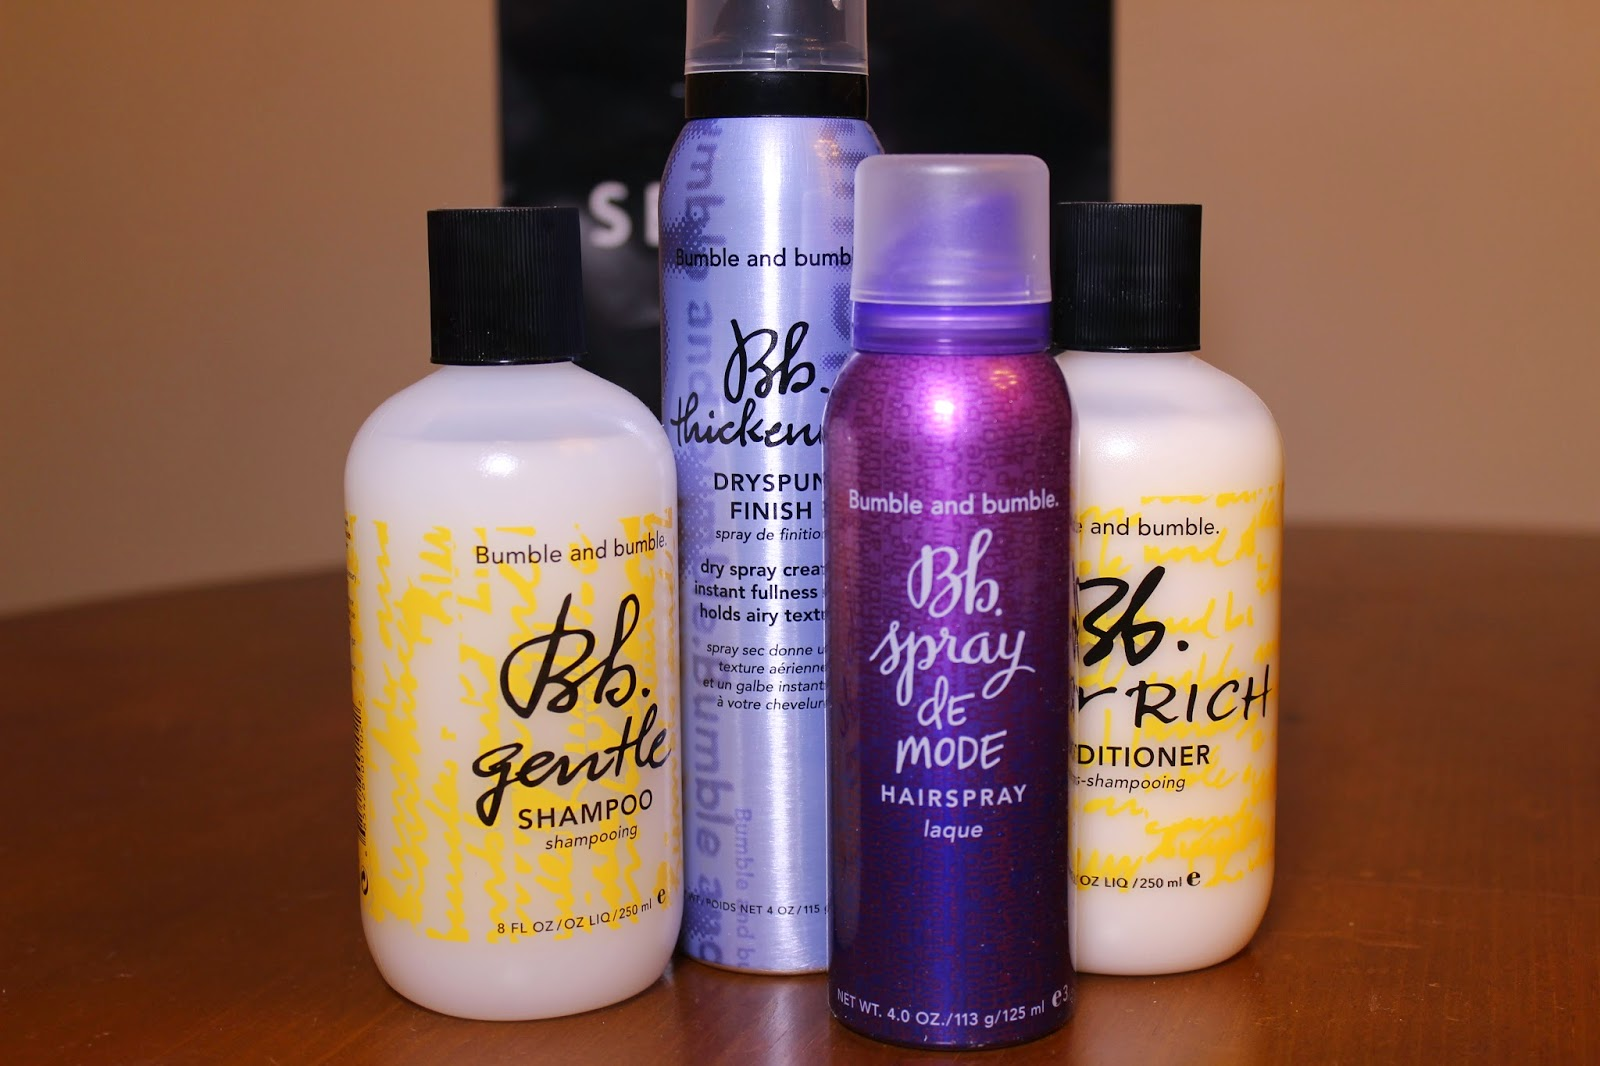 Bumble and Bumble, shampoo, conditioner, hairspray, texturizing, spray, volume, hair, care, thick, body, haul, review, Sephora